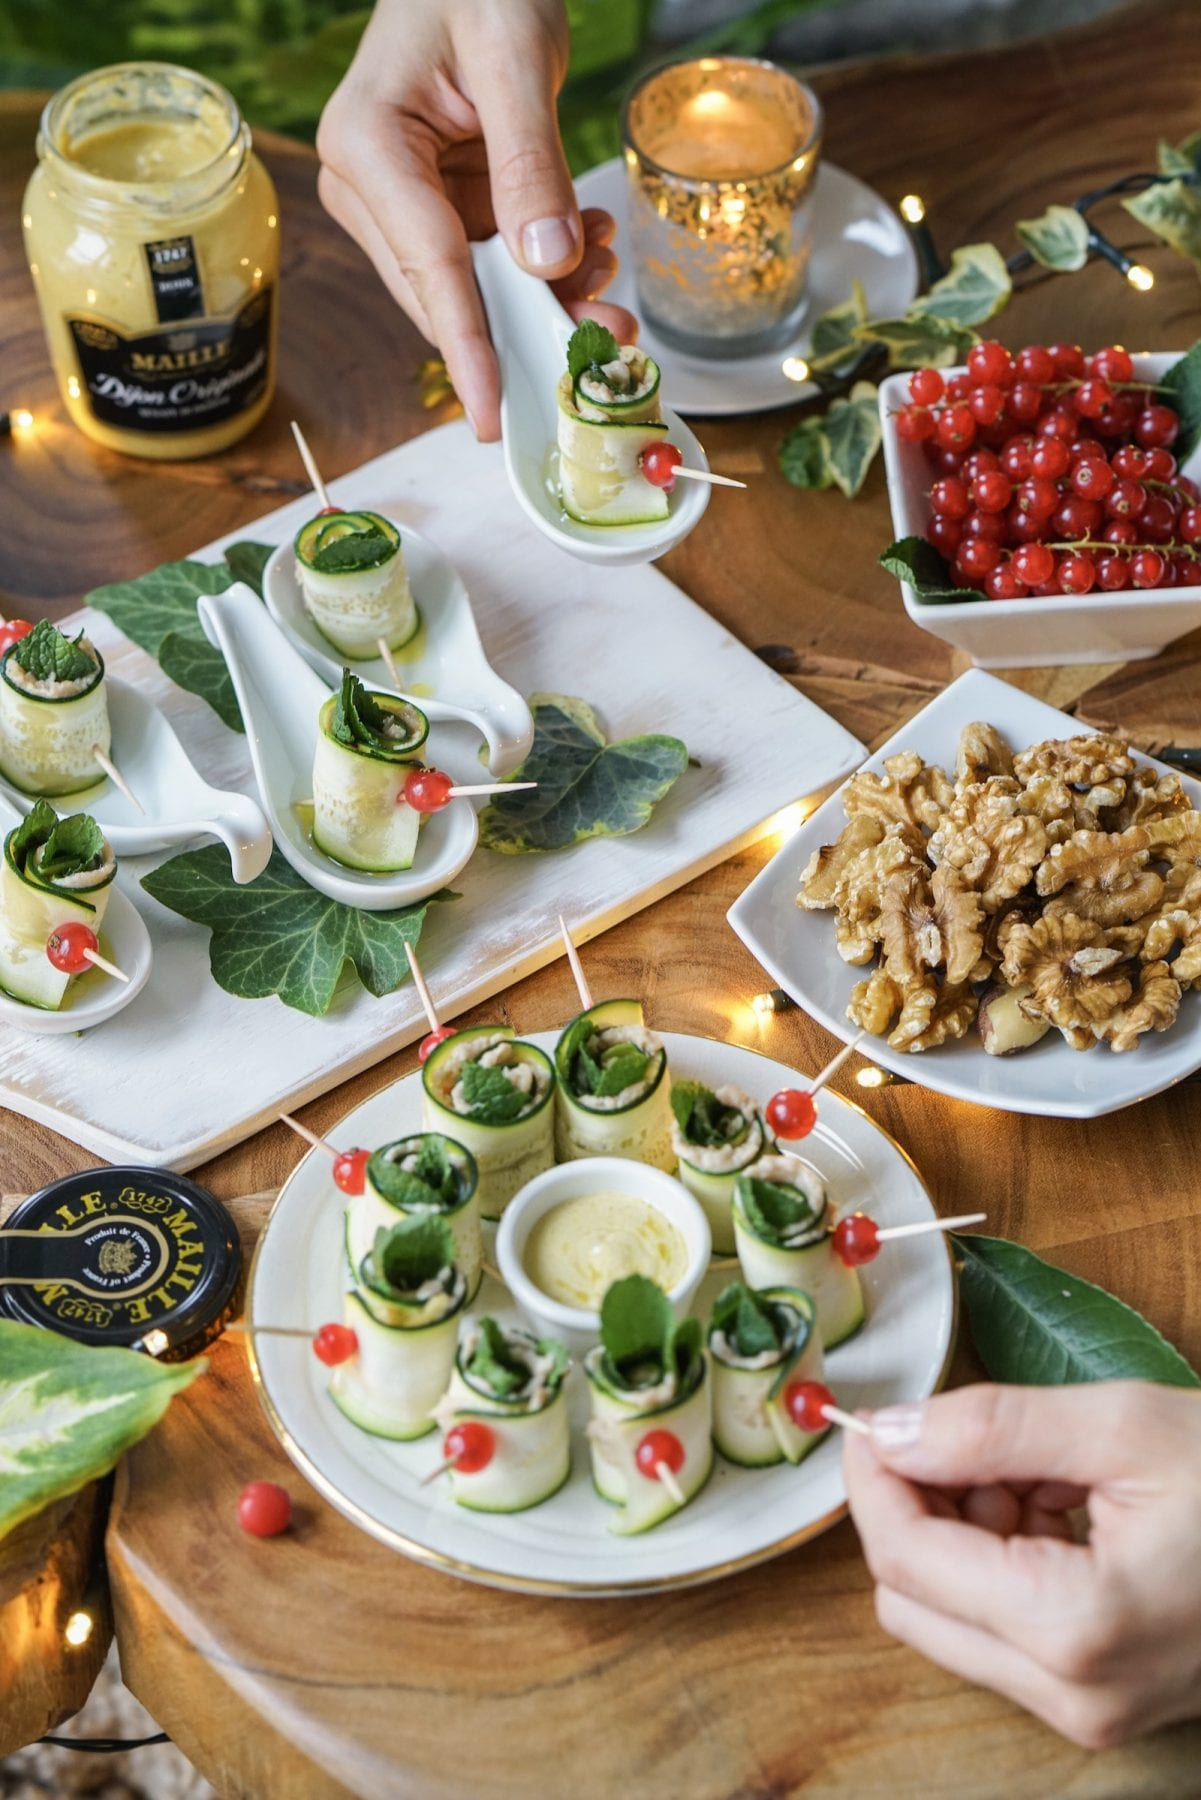 Healthy Christmas Appetizers Pinterest Holiday Party Finger Food Gluten Free Zucchini Rolls